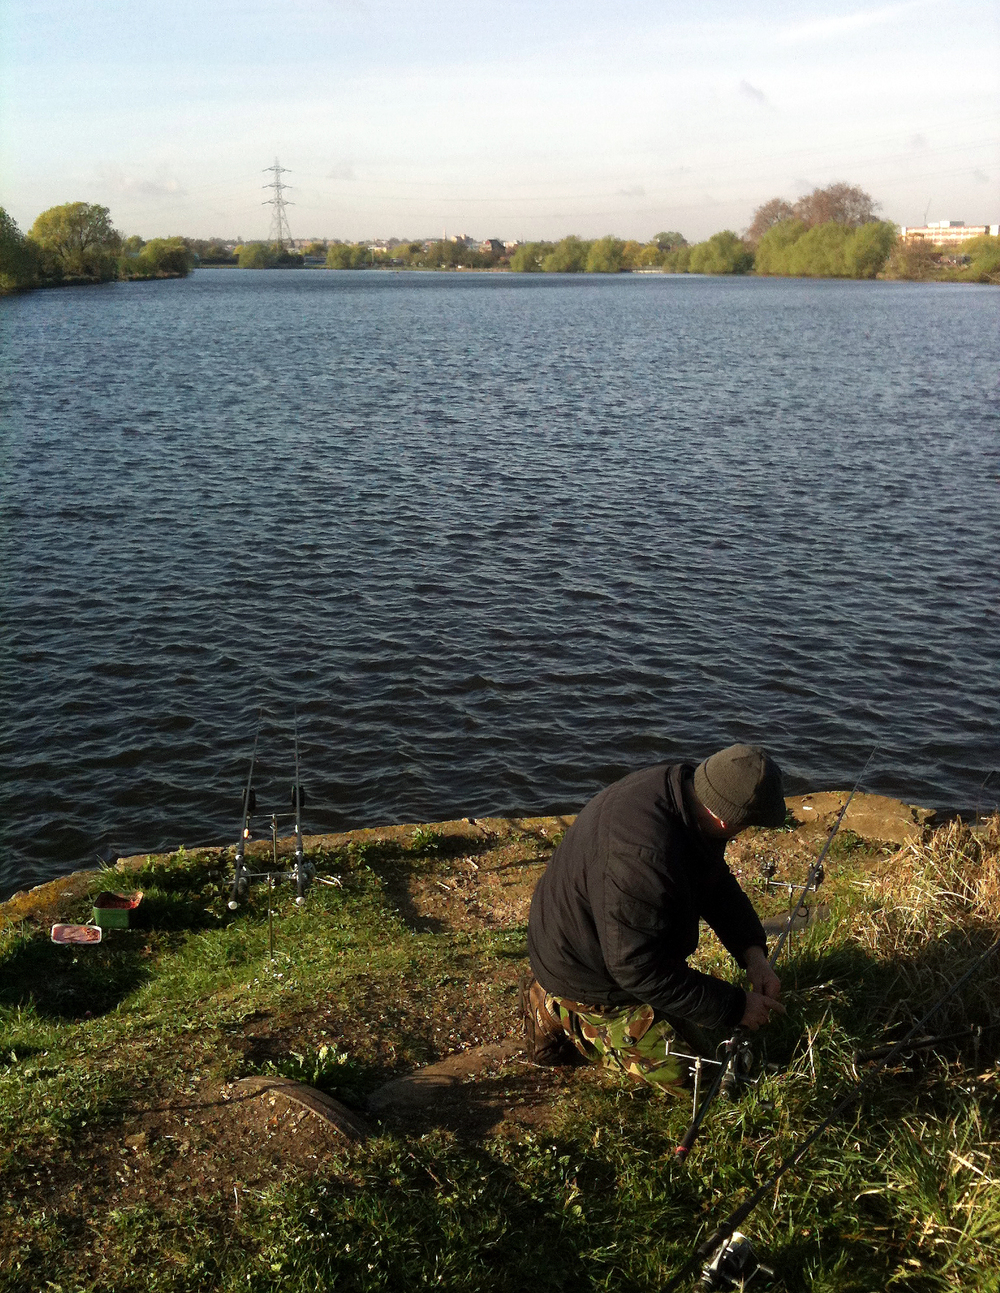 Walthamstow reservoir, and we're on the Lower Maynard